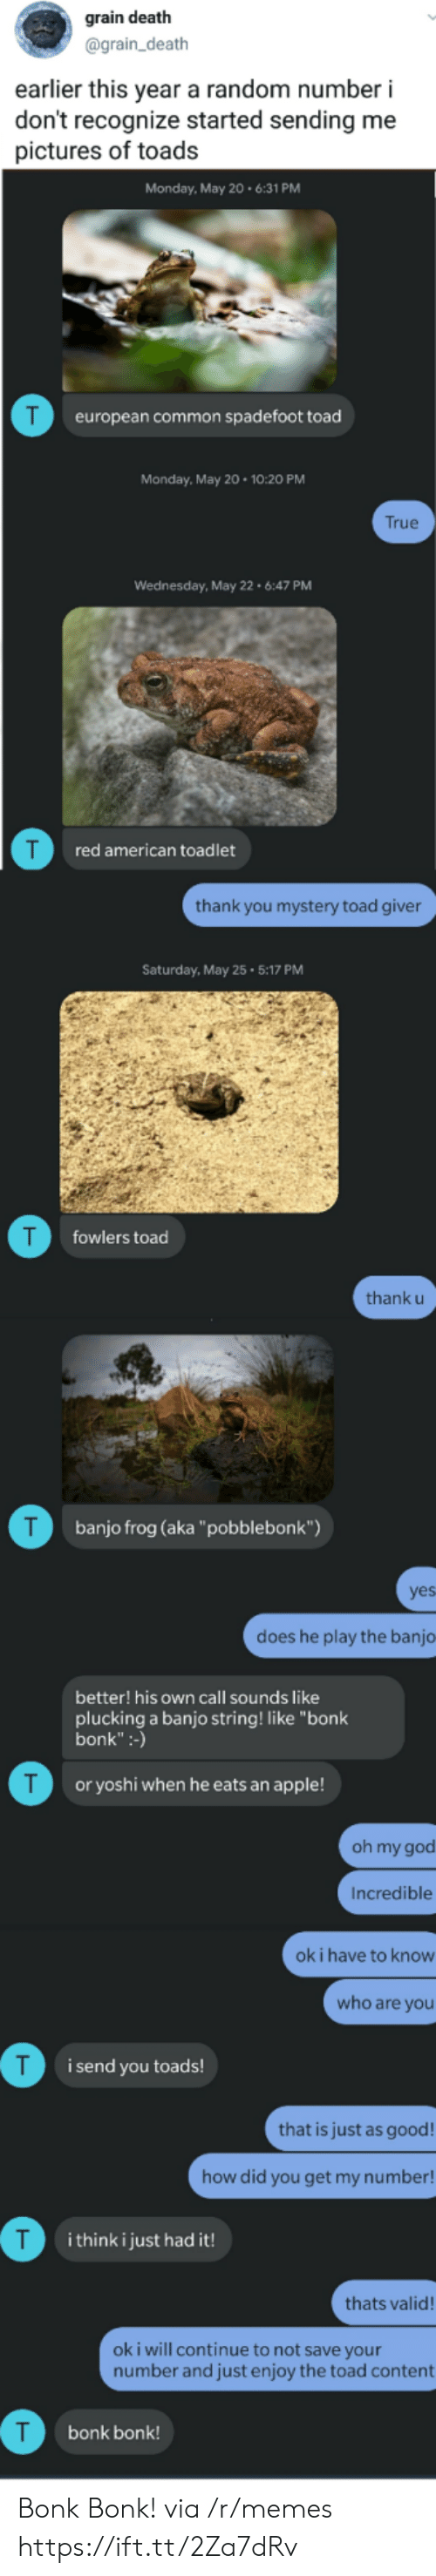 """toads: grain death  @grain_death  earlier this year a random number i  don't recognize started sending me  pictures of toads  Monday, May 20.6:31 PM  T  european common spadefoot toad  Monday, May 20 10:20 PM  True  Wednesday, May 22 6:47 PM  red american toadlet  thank you mystery toad giver  Saturday, May 25 5:17 PM  T  fowlers toad  thank u  T  banjo frog (aka""""pobblebonk"""")  yes  does he play the banjo  better! his own call sounds like  plucking a banjo string! like """"bonk  bonk"""":-)  T  or yoshi when he eats an apple!  oh my god  Incredible  ok i have to know  who are you  i send you toads!  that is just as good!  how did you get my number!  T  i think i just had it!  thats valid!  oki will continue to not save your  number and just enjoy the toad content  bonk bonk! Bonk Bonk! via /r/memes https://ift.tt/2Za7dRv"""